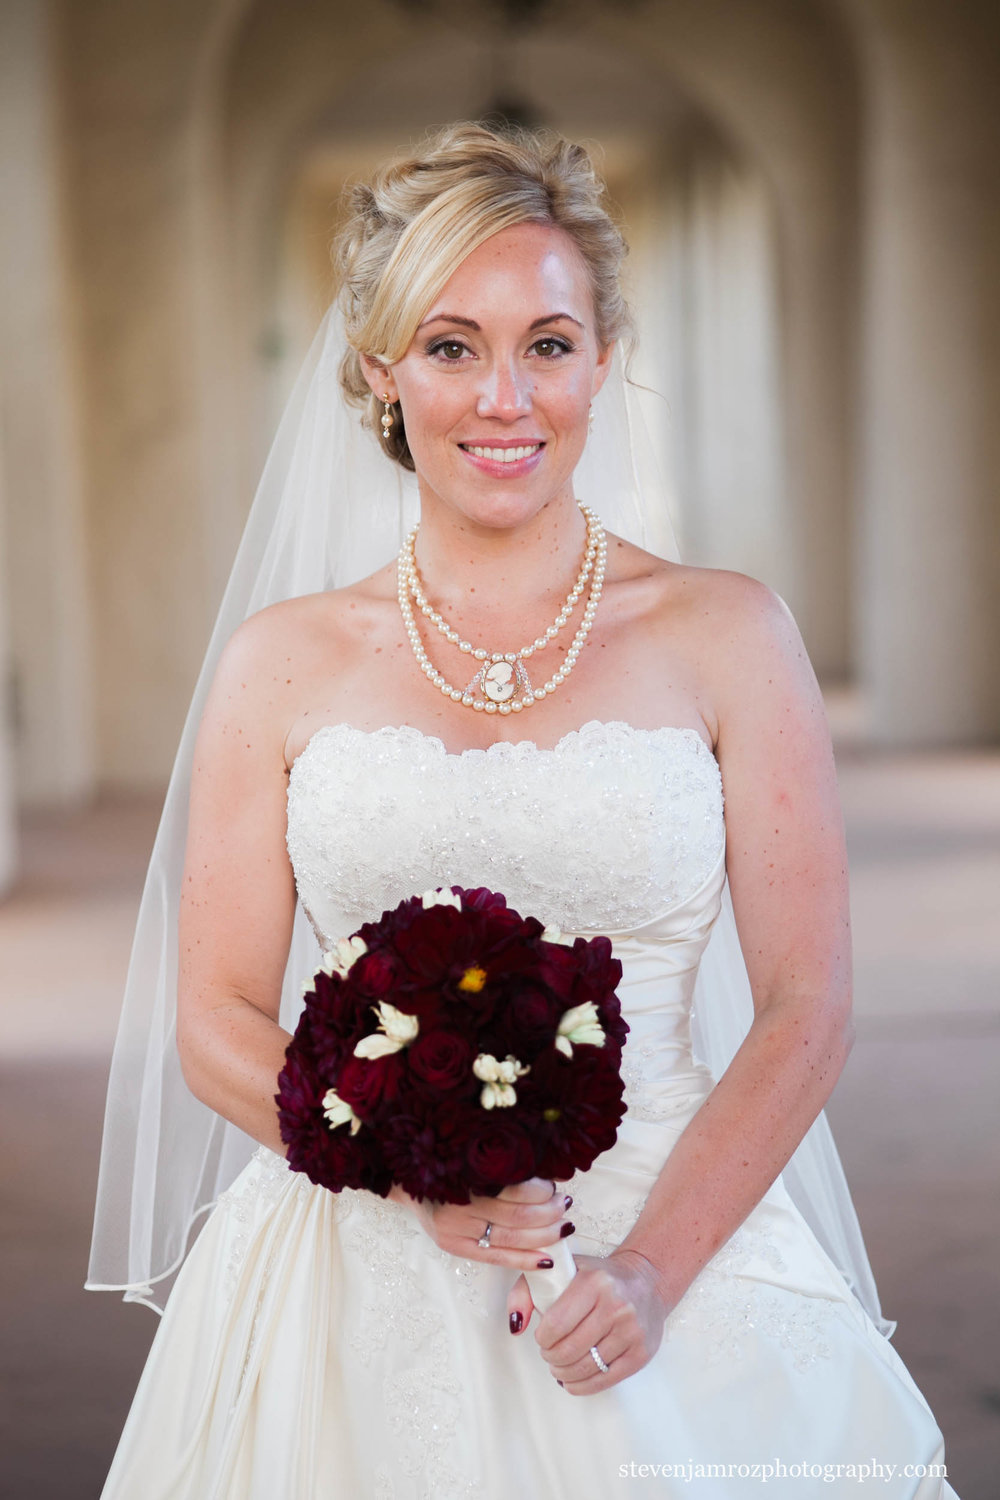 red-flowers-bride-portrait-raleigh-wedding-steven-jamroz-photography-0231.jpg